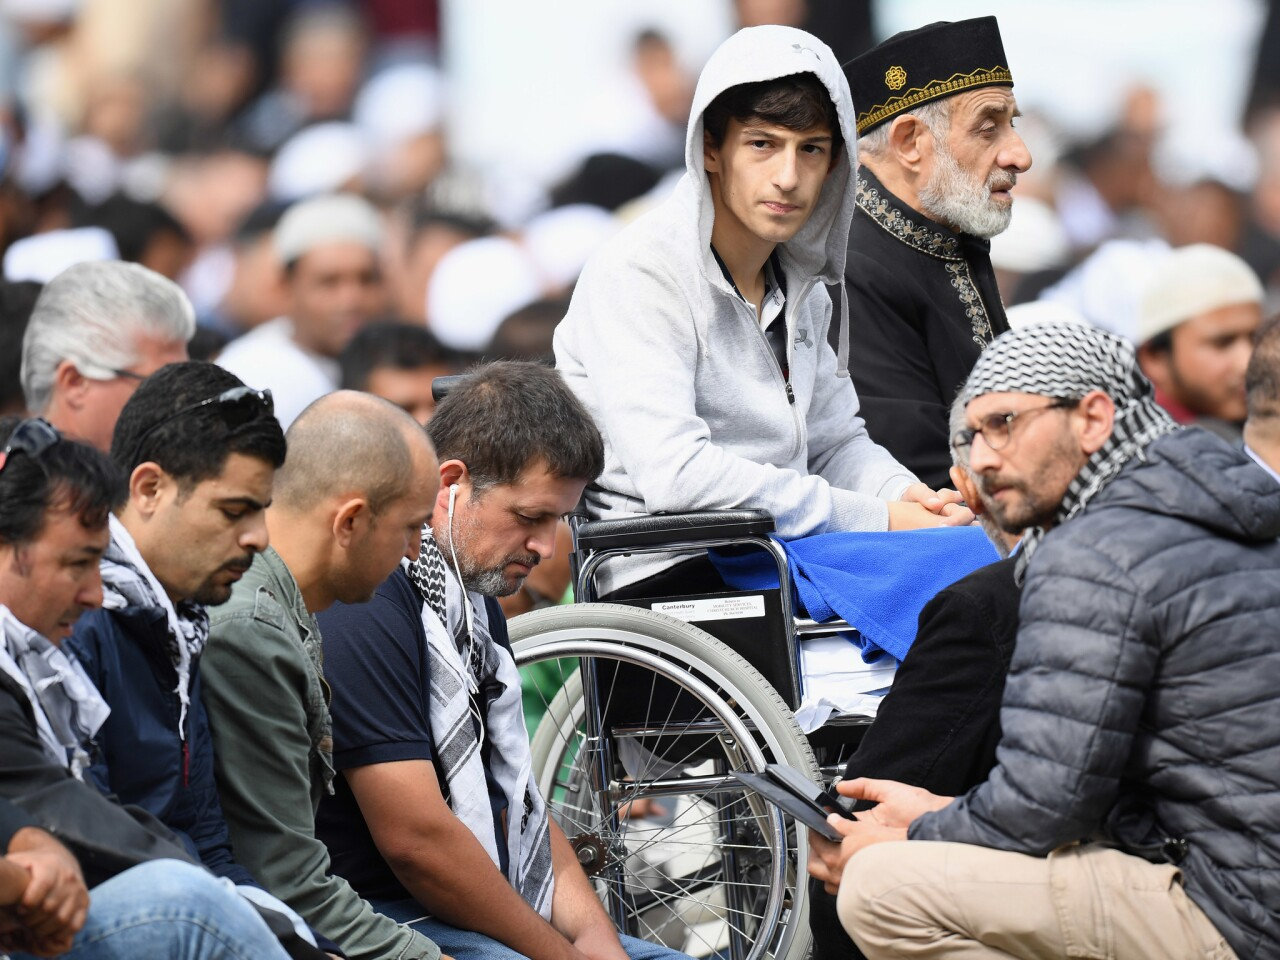 Zahid Mustafa, center, whose father Khaled Mustafa and brother Hamza Mustafa were killed at Al Noor mosque, attends Friday prayers in Hagley Park near Al Noor mosque in Christchurch, New Zealand.